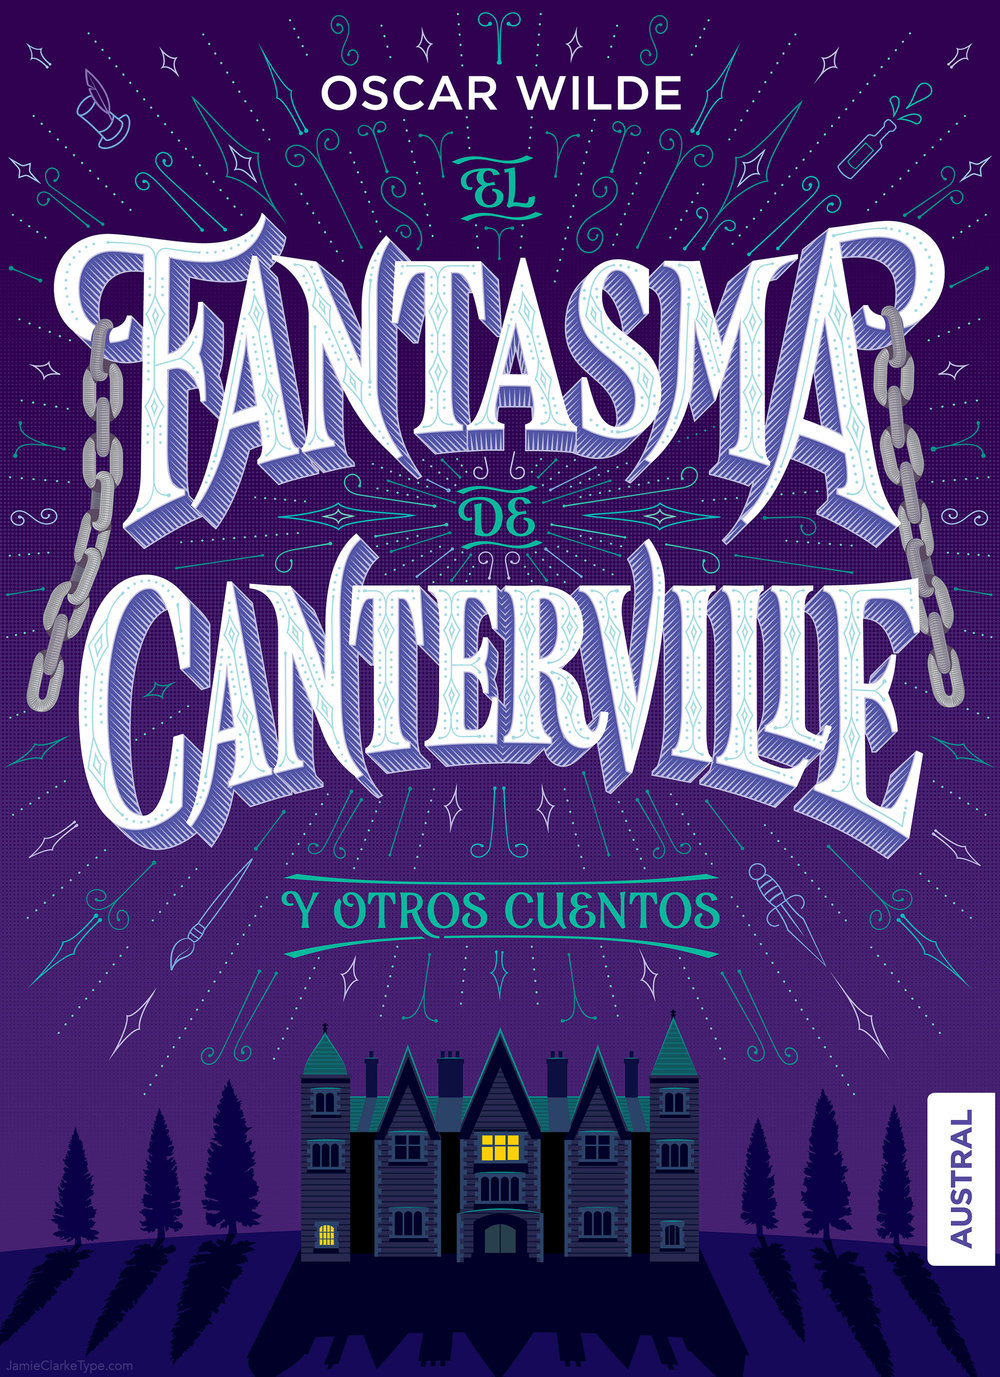 The Final Artwork for the cover, El fantasma de Canterville y otros cuentos.